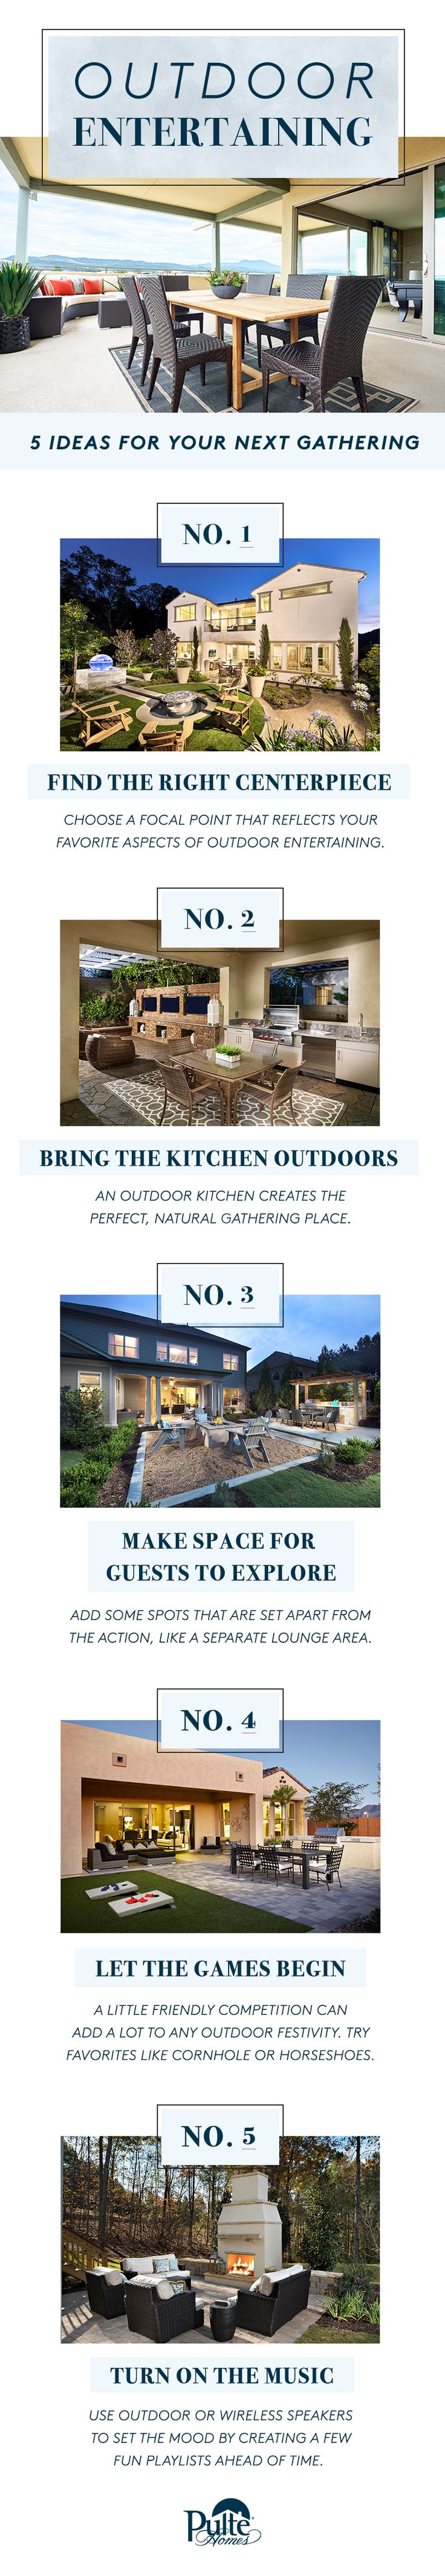 85 best Outdoor Living images on Pinterest | Pulte homes, Outdoor ...